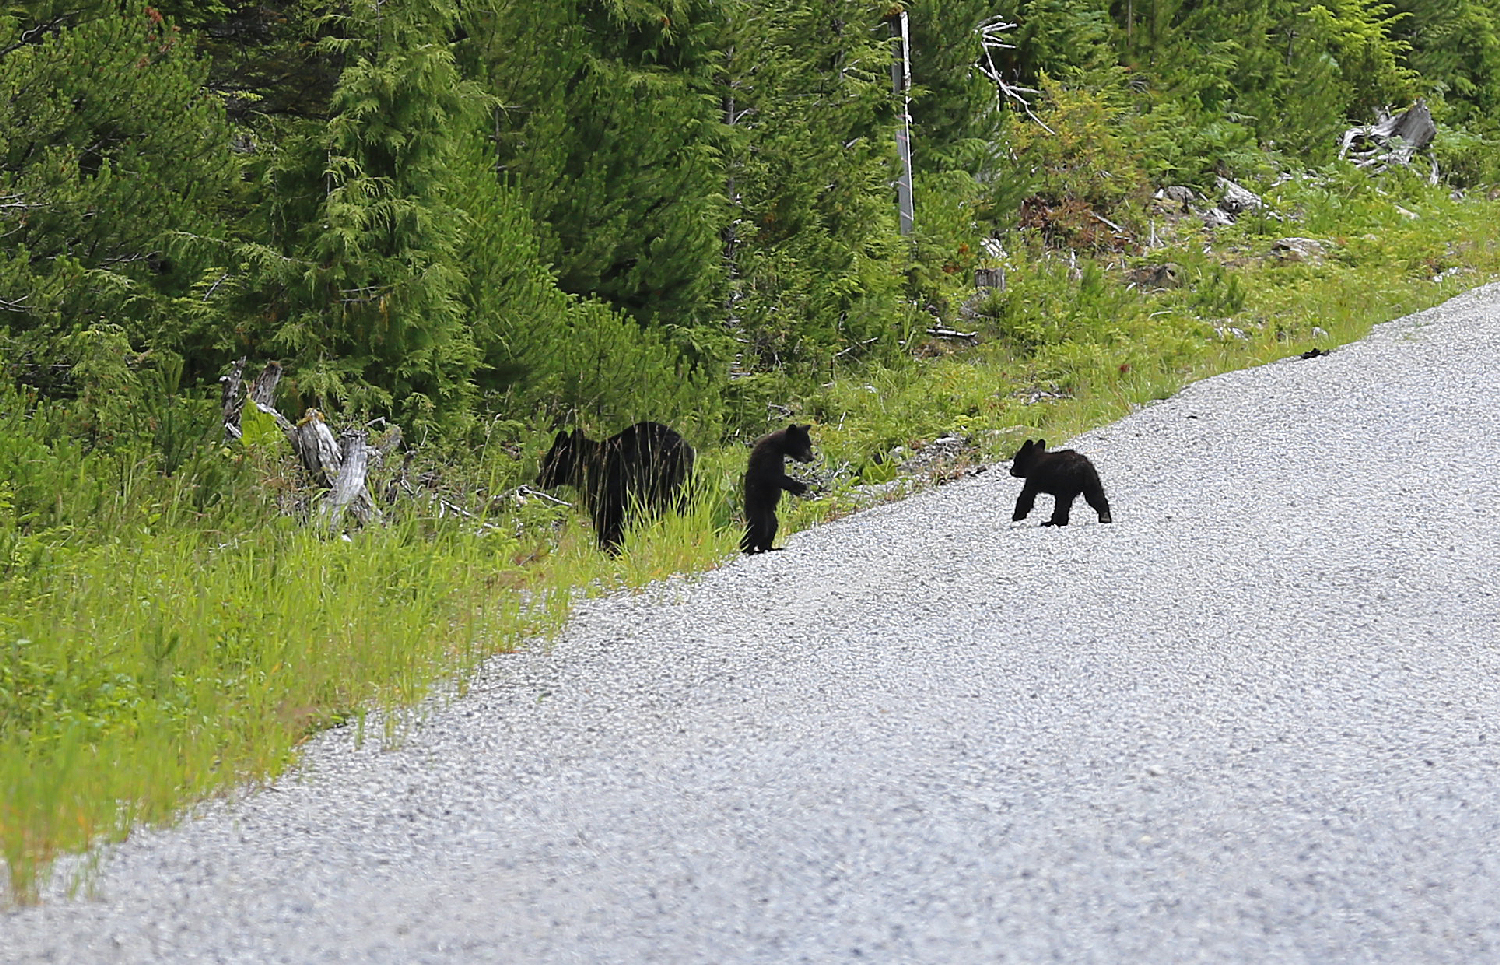 bear cub black bear sow mom mamma twins crossing road standing up southeast alaska prince of wales island